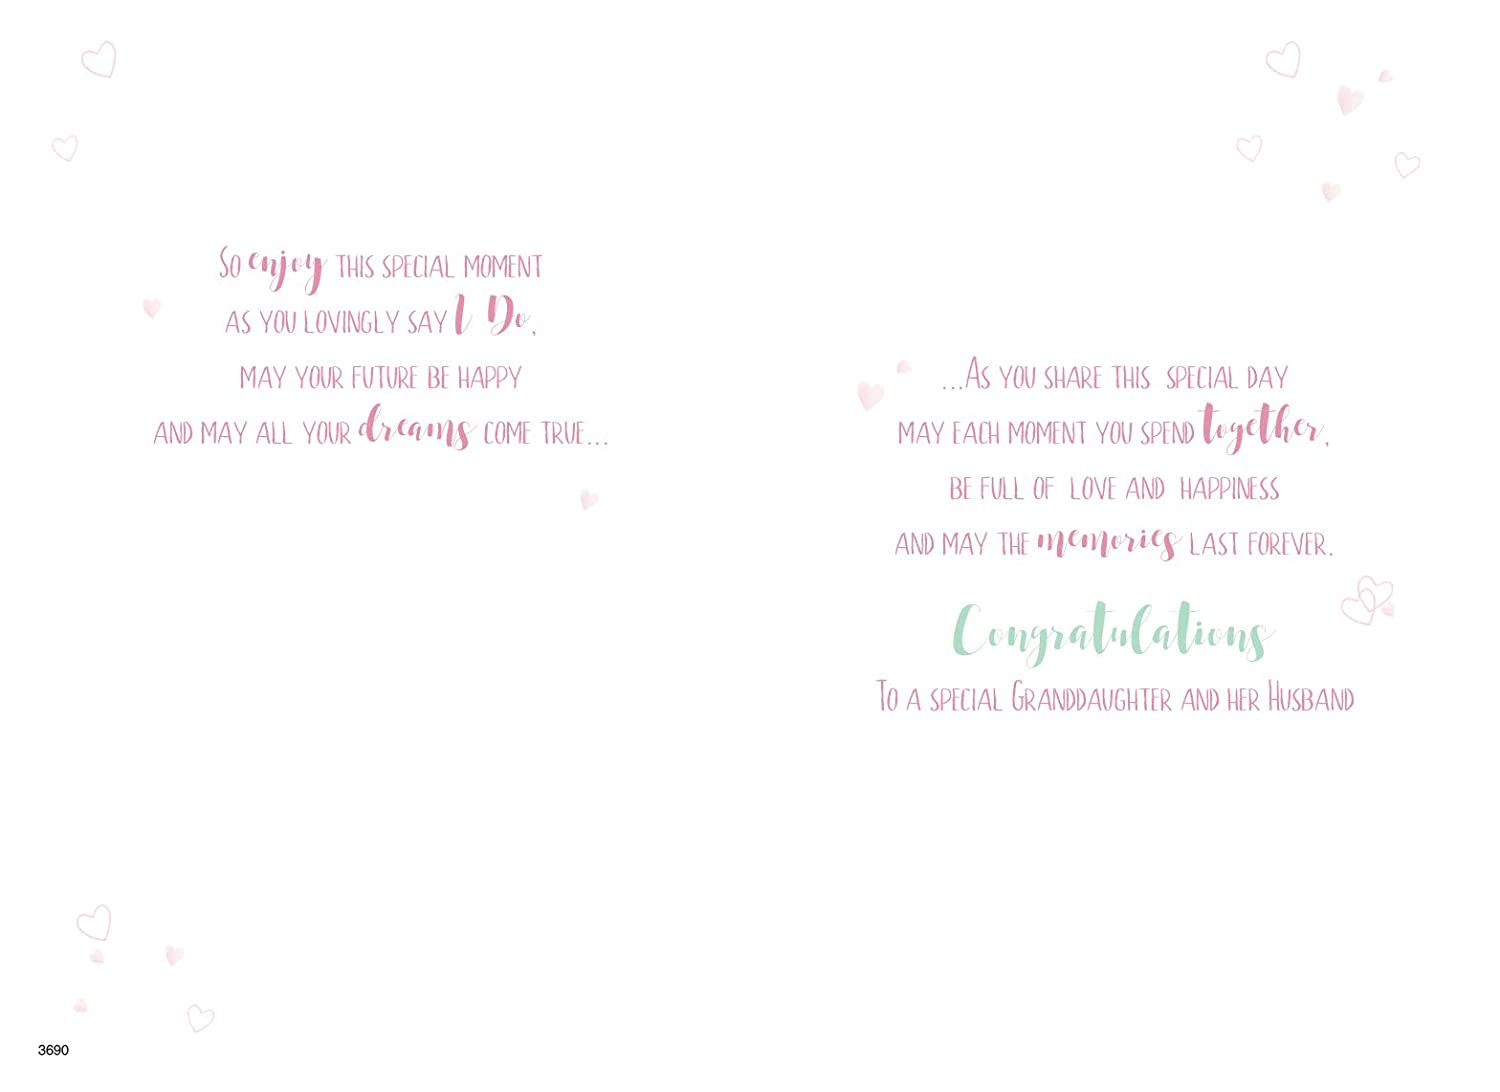 Wedding Arch Couple ICG Special Granddaughter and Husband On Your Wedding Day Card